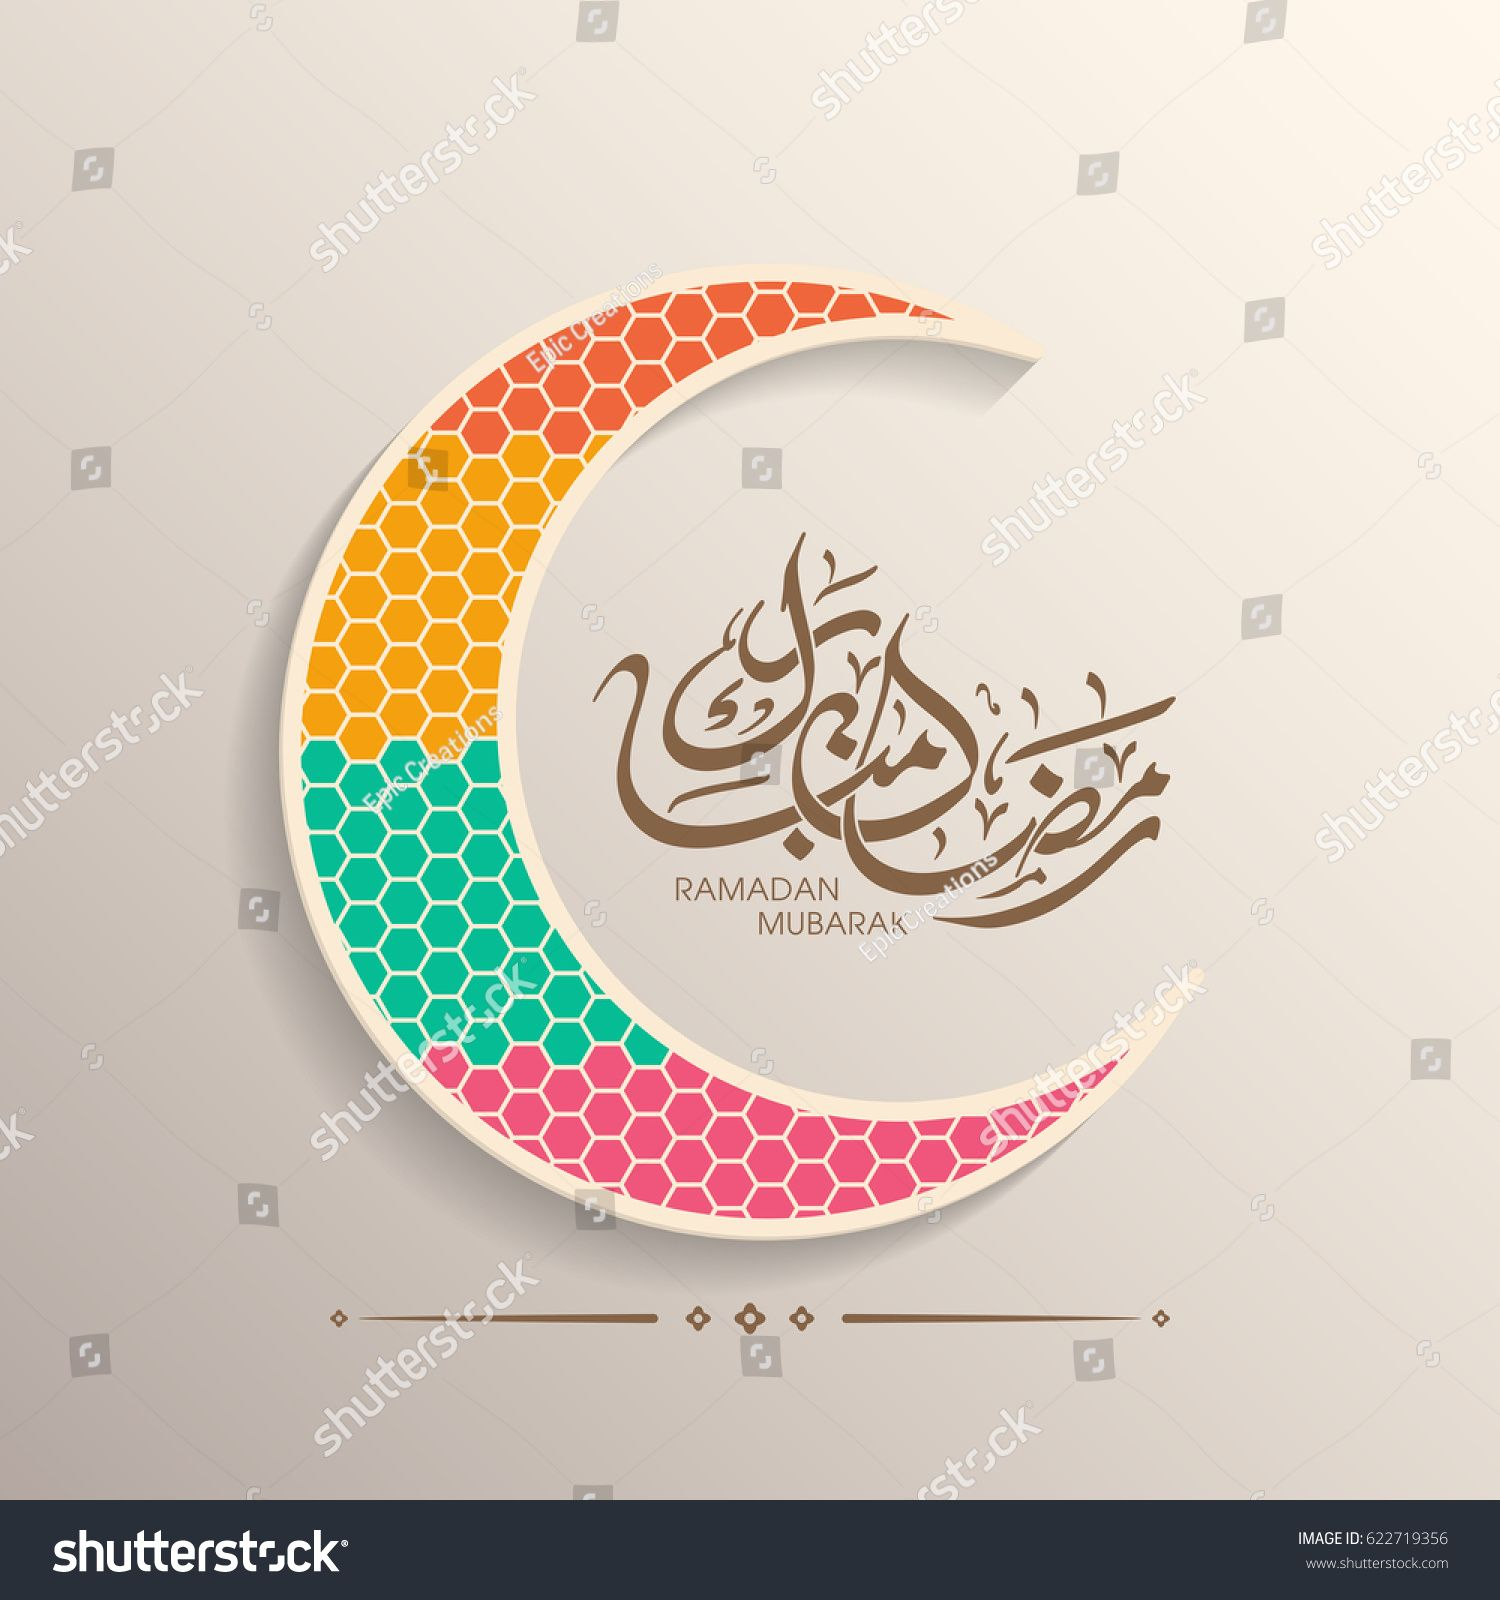 Illustration Of Ramadan Mubarak With Arabic Calligraphy And Moon For The Celebration Of Muslim Community Festival Ramadan Mubarak Ramadan Illustration